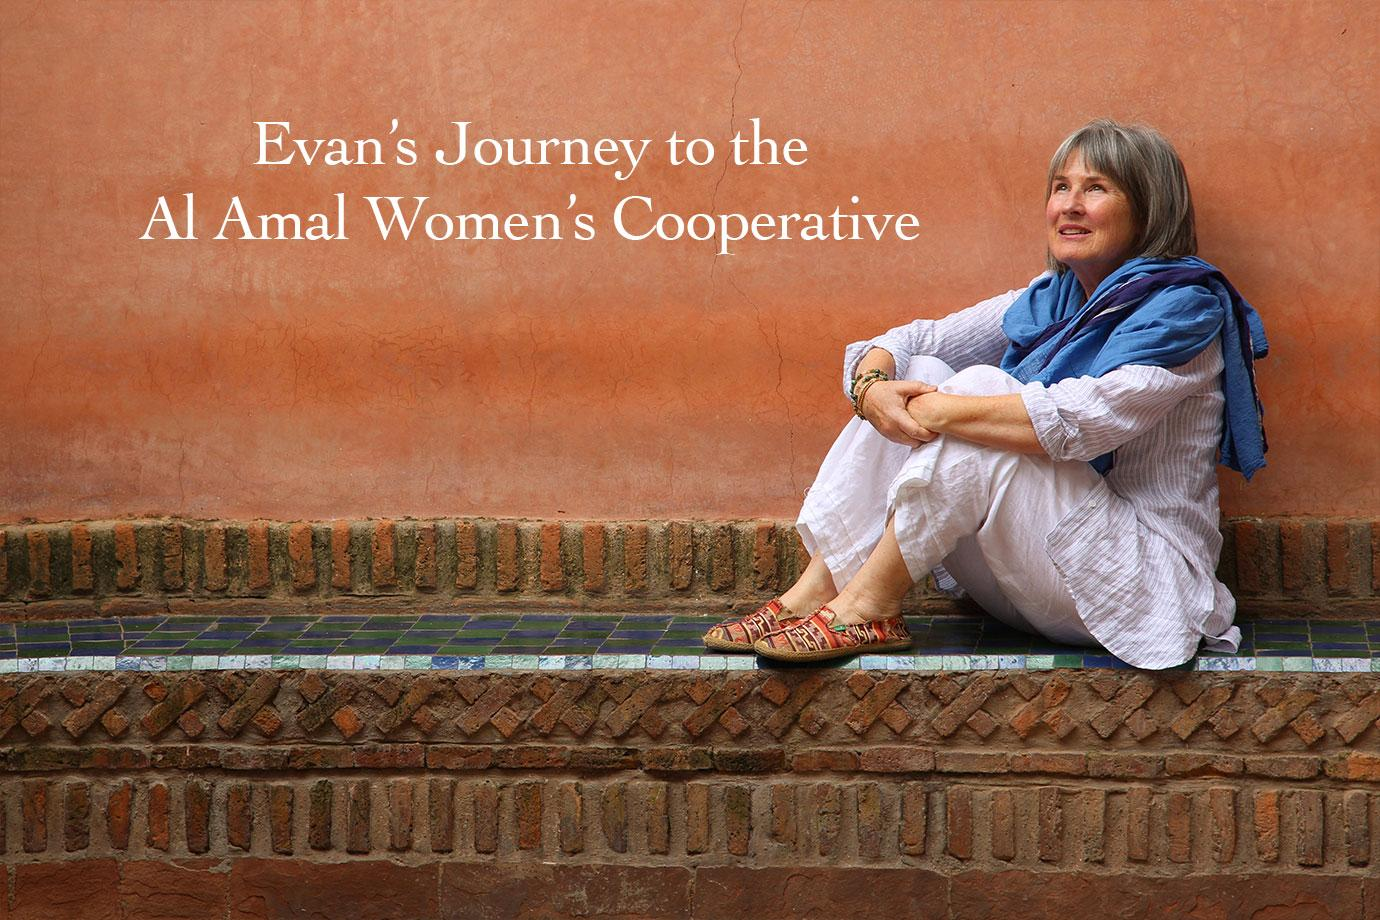 Evans Journey to the Al Amal Womens Co-operative